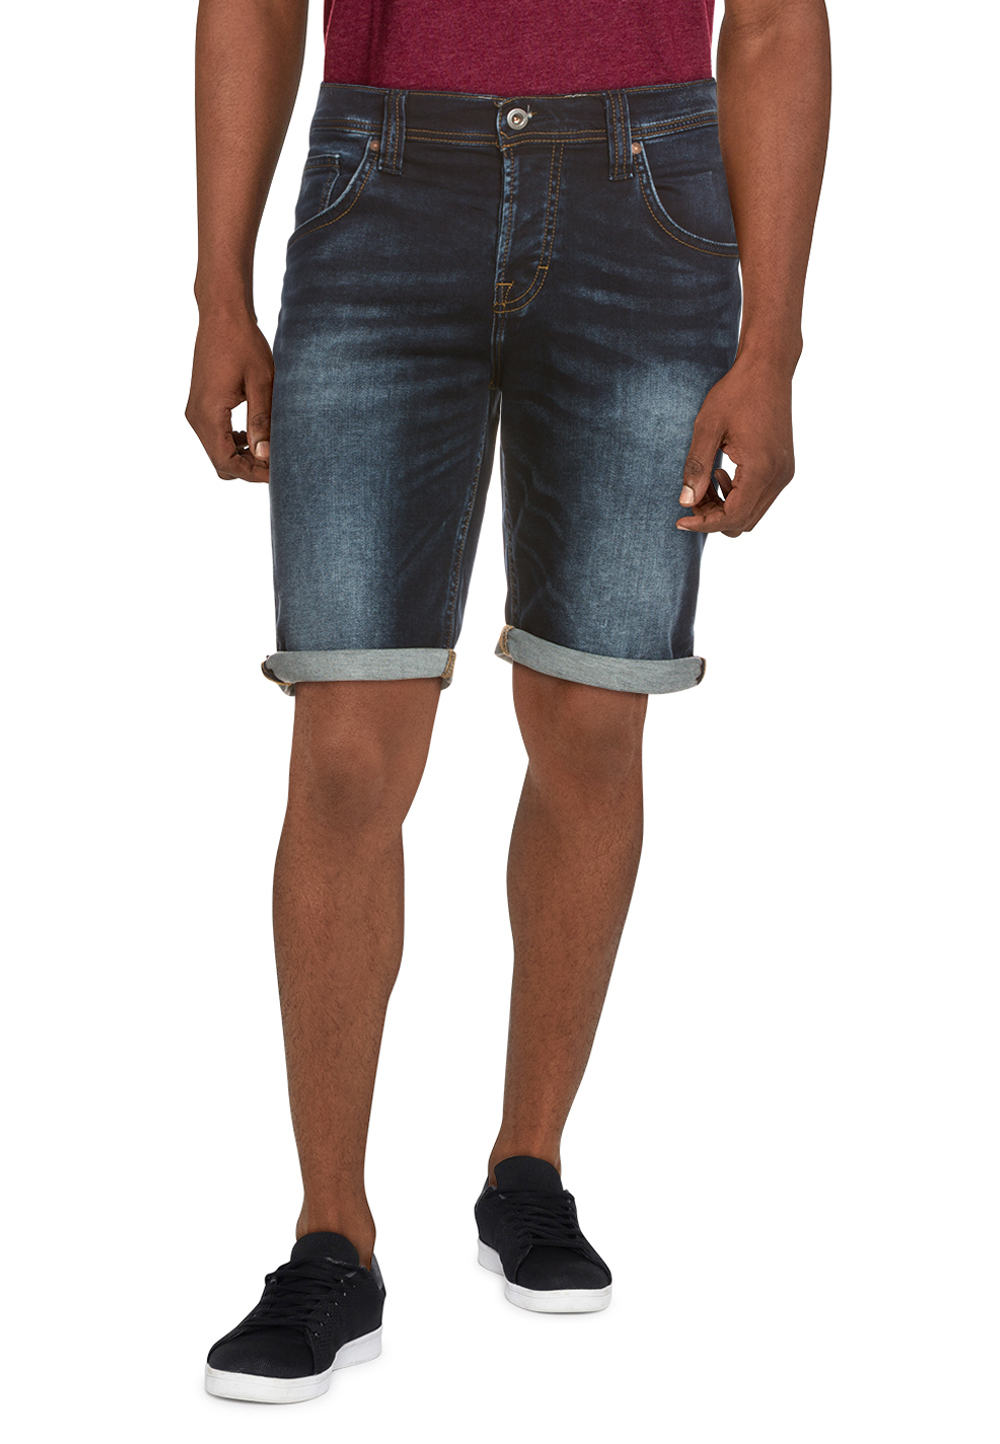 Mustang Shorts, Regular Fit blau | Bekleidung > Shorts & Bermudas > Shorts | Blau | Mustang